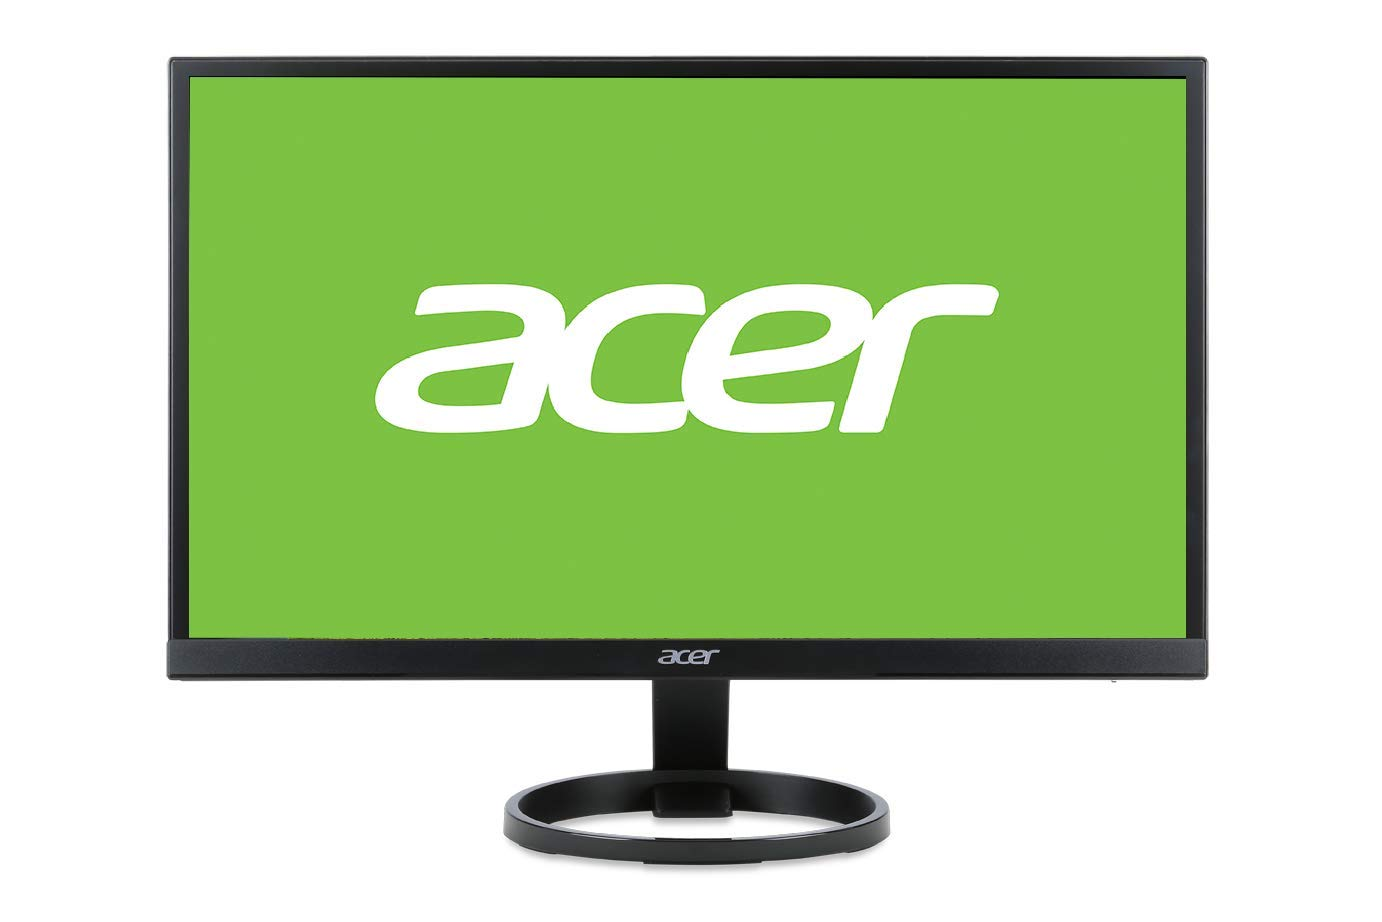 Acer R241Y 23.8-inch Full HD Monitor (IPS panel, 60Hz, 4ms, ZeroFrame, HDMI, DVI) Black